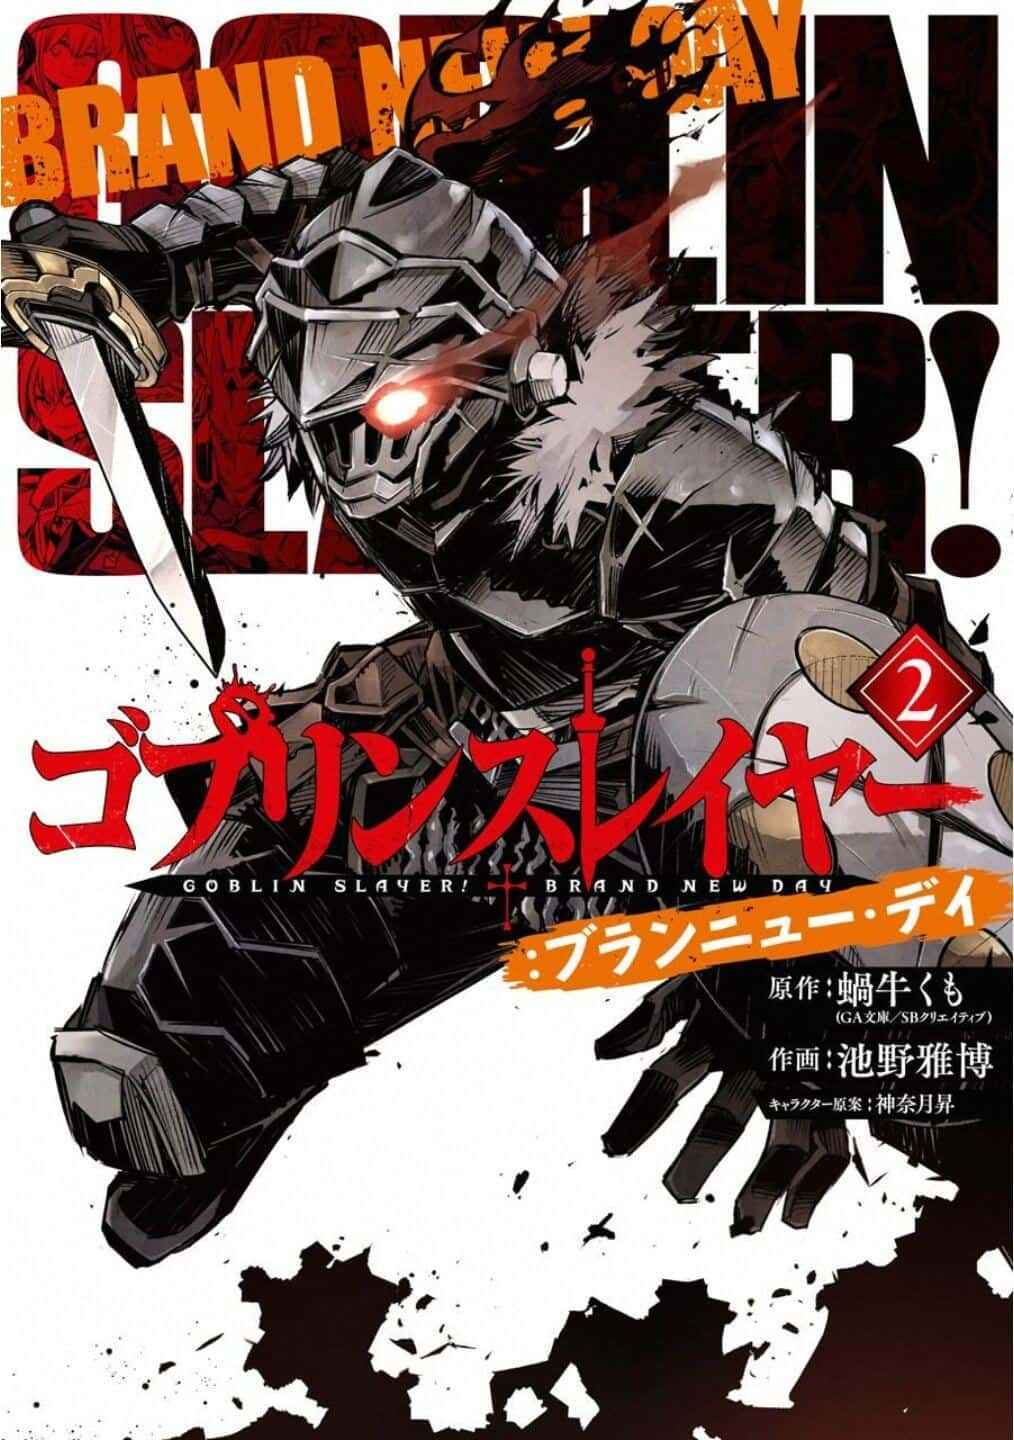 Descargar Goblin Slayer Brand New Day manga